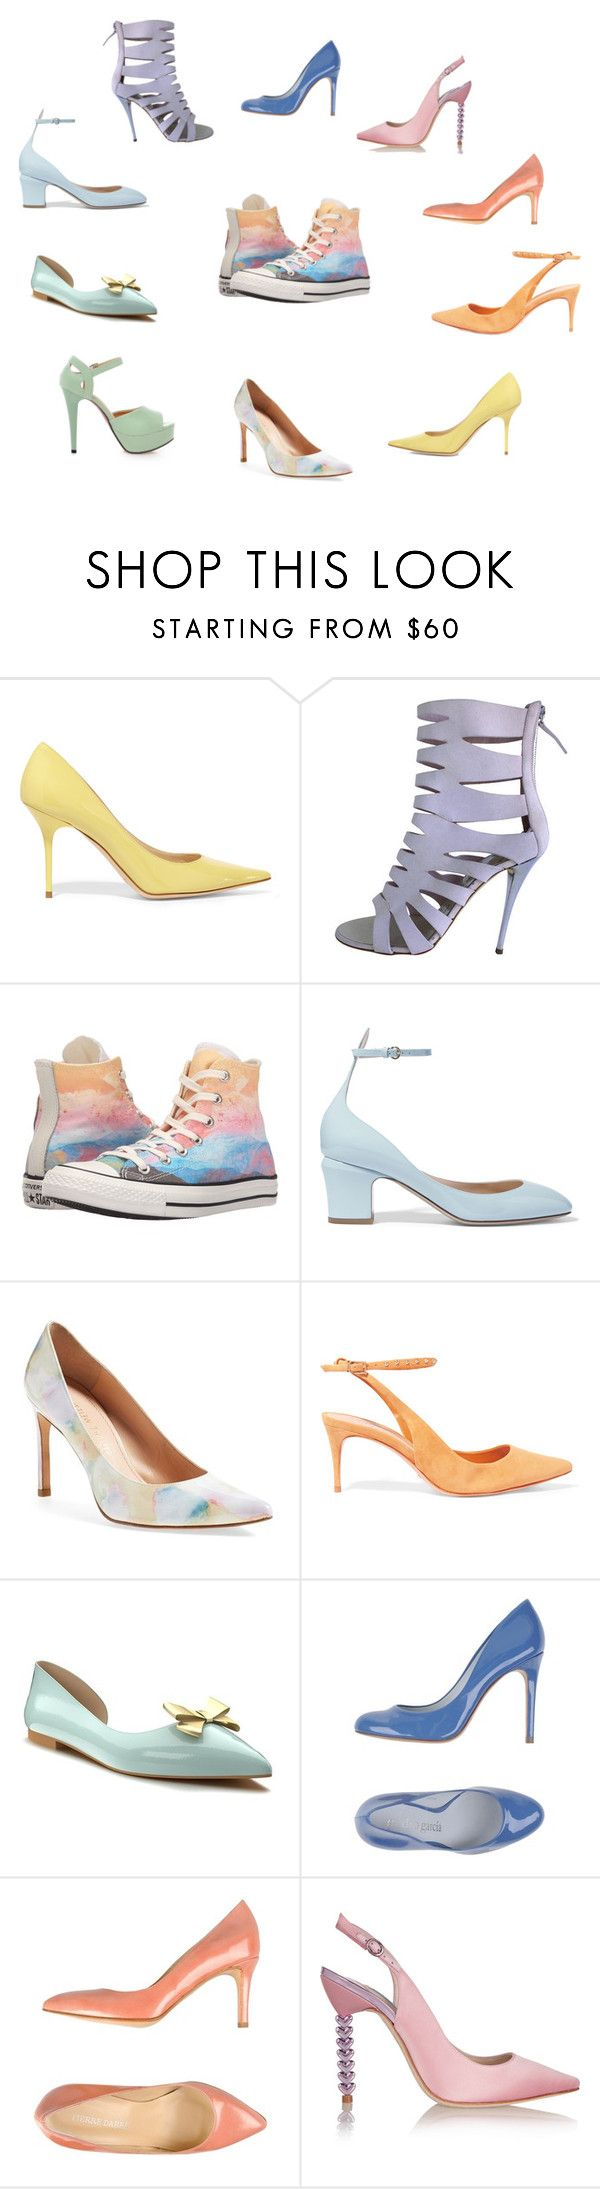 Cipők2016_6 by colorstyle-hu on Polyvore featuring Pastel Pairs, Stuart Weitzman, Converse, Pierre Darré, Shoes of Prey, Pedro Garcà a, Giuseppe Zanotti, Schutz, Valentino and Jimmy Choo